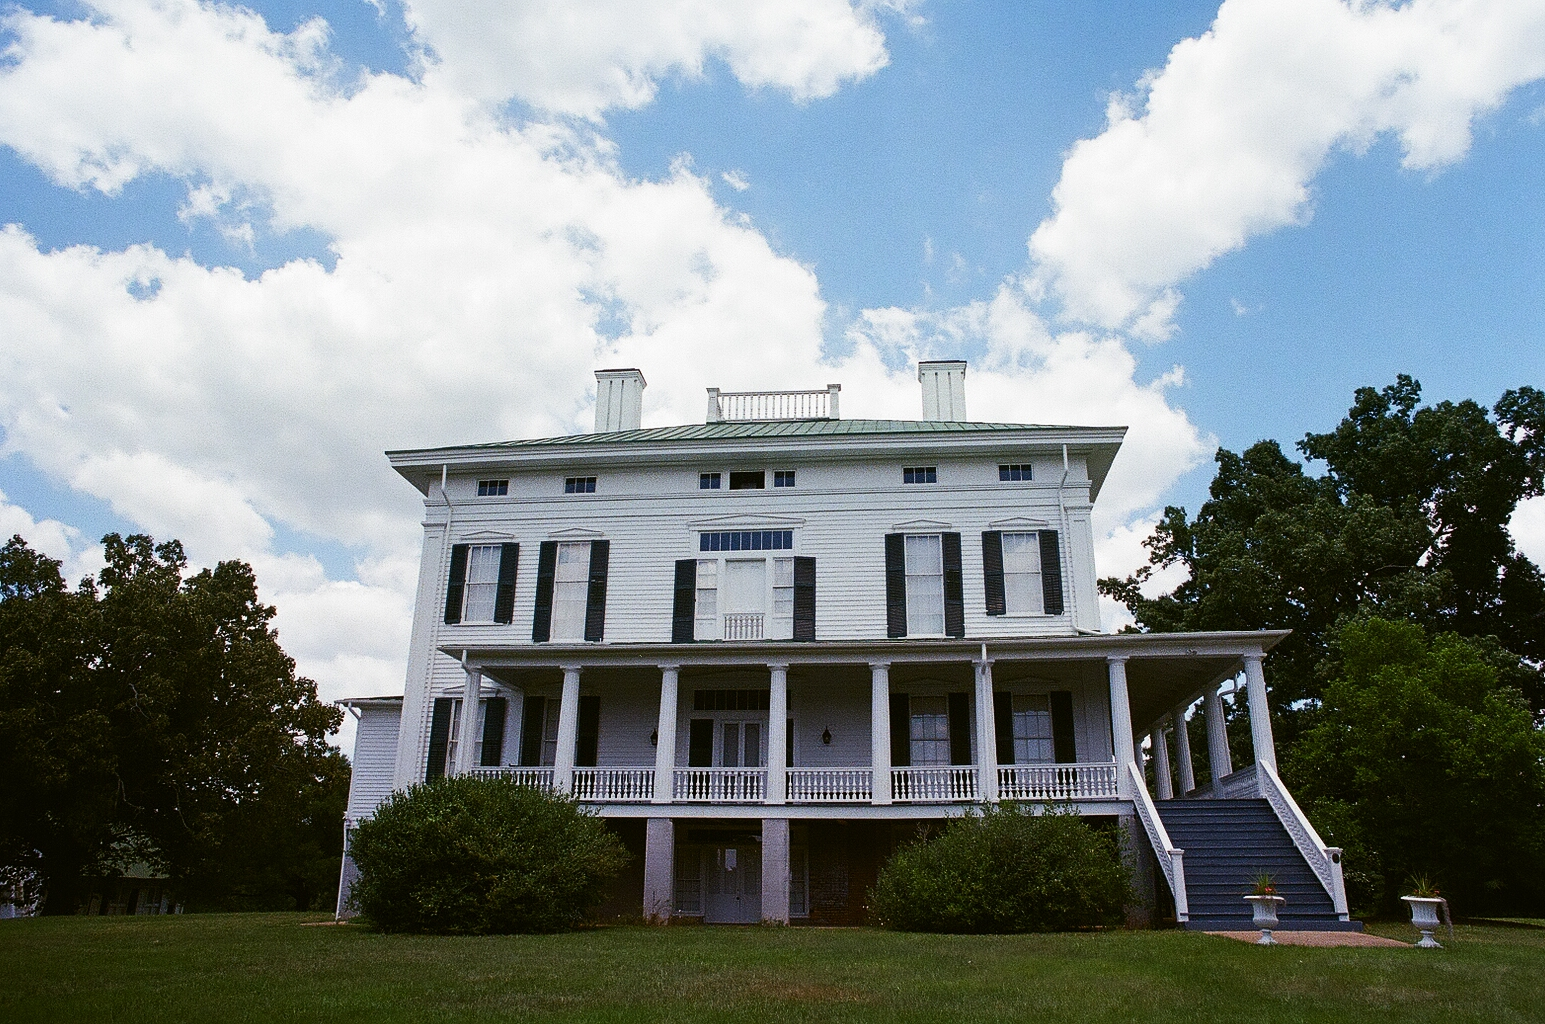 The Redcliffe Plantation is only a thirty minute drive and has fabulous guided tours, beautiful architecture, and an interesting history.